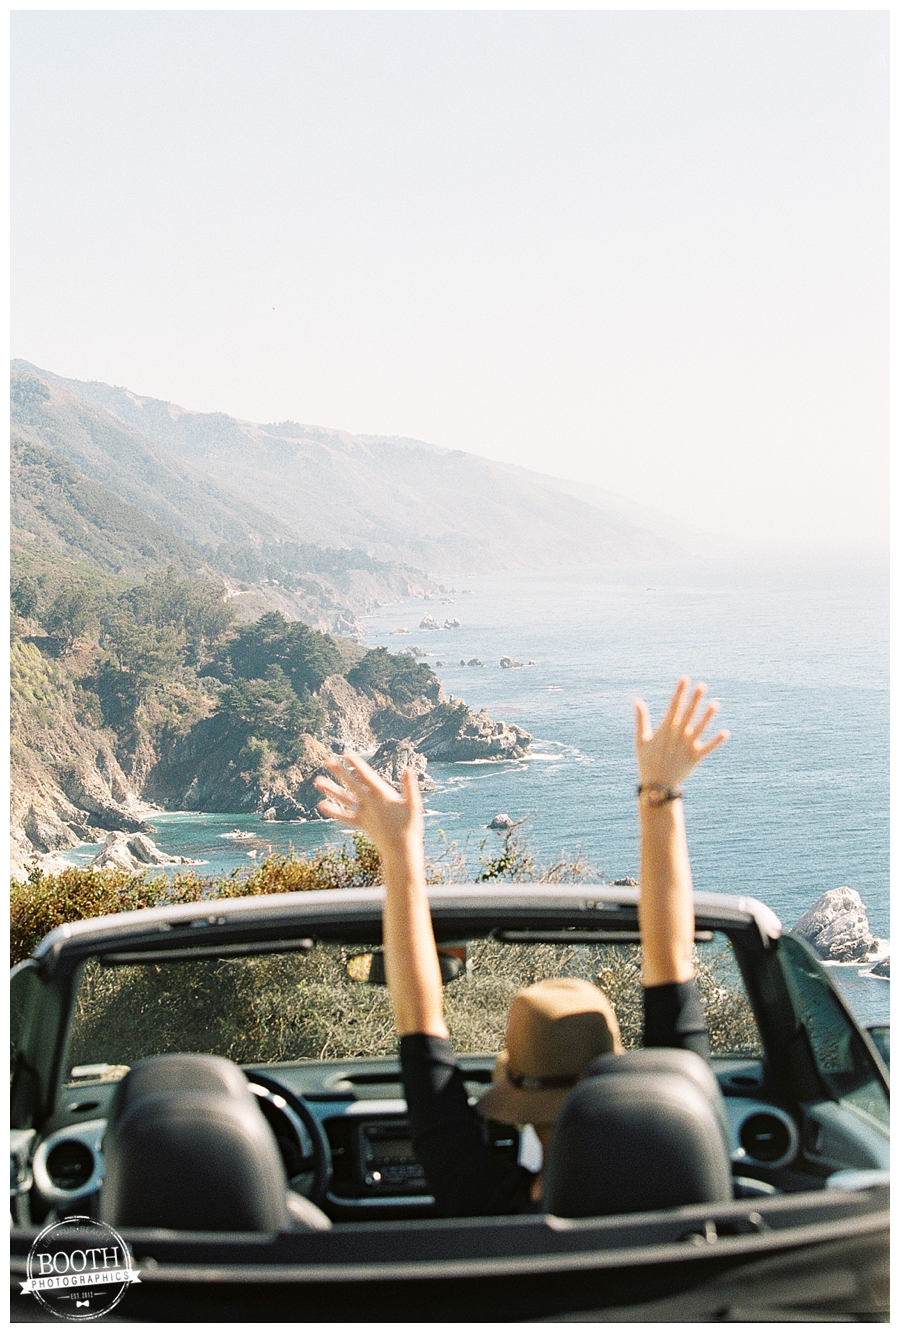 Stephanie throws her hands in the air in our convertible parked along the California coast in Big Sur